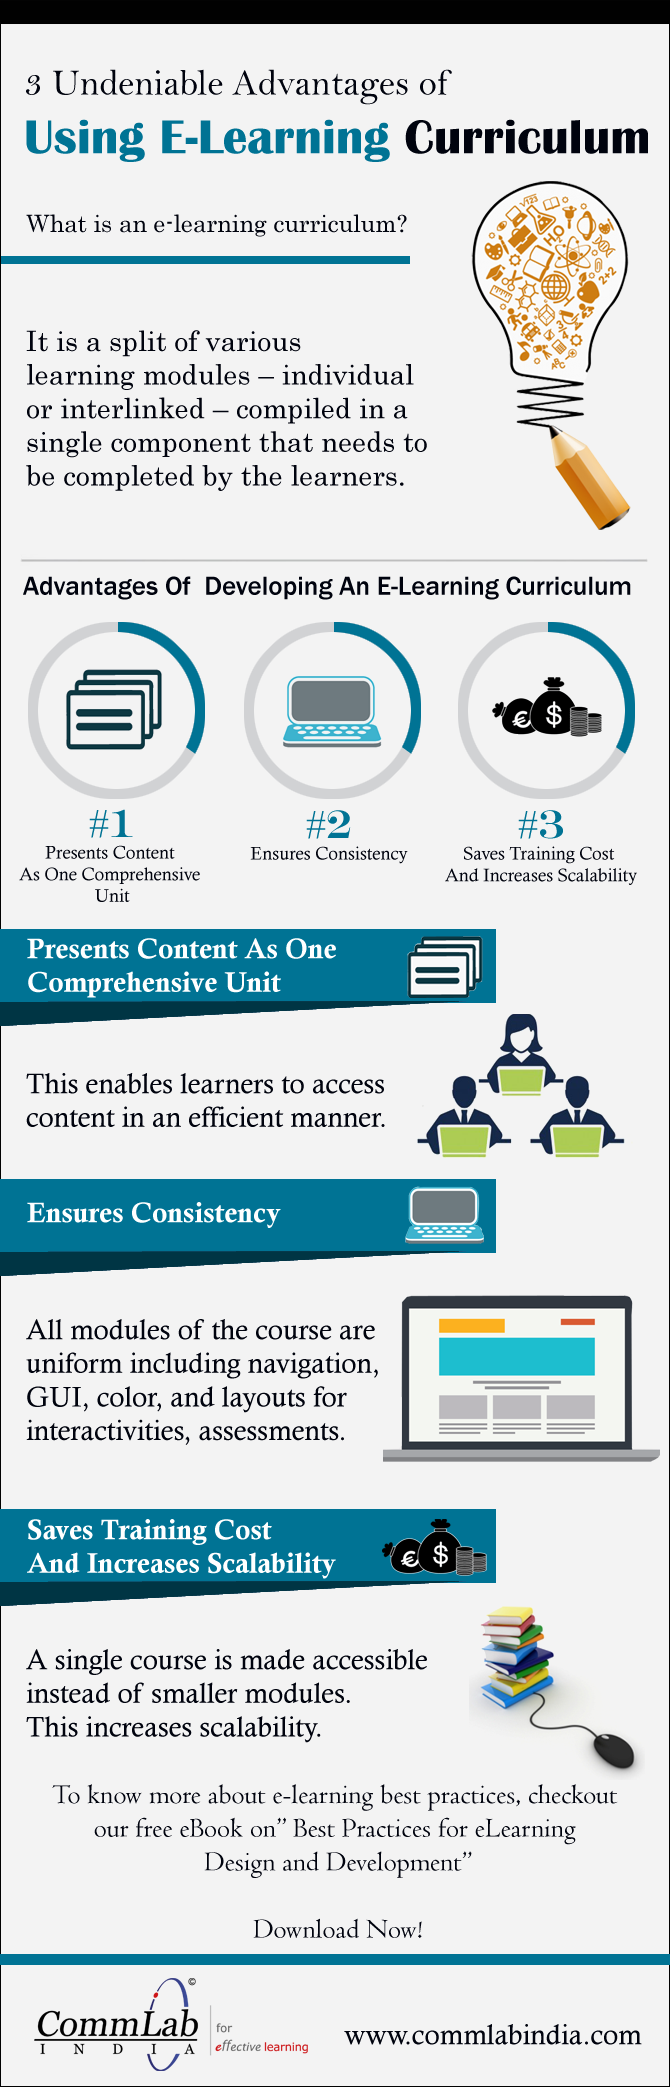 Online Training Curriculums: Paving the Way for Better E-learning [Infographic]